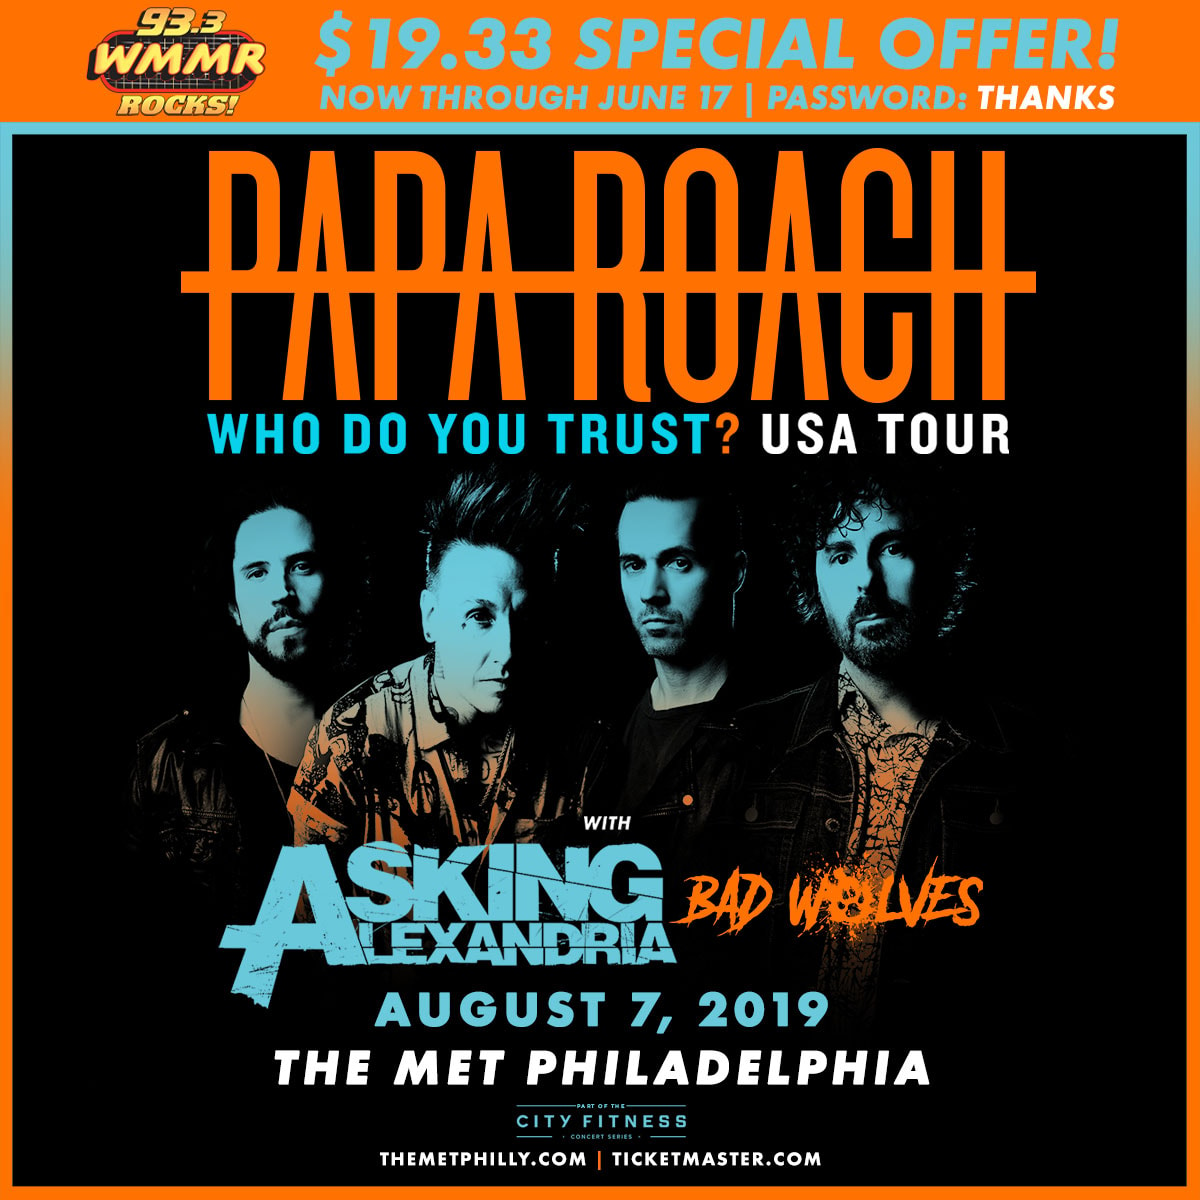 Papa Roach $19.33 Ticket Special Offer